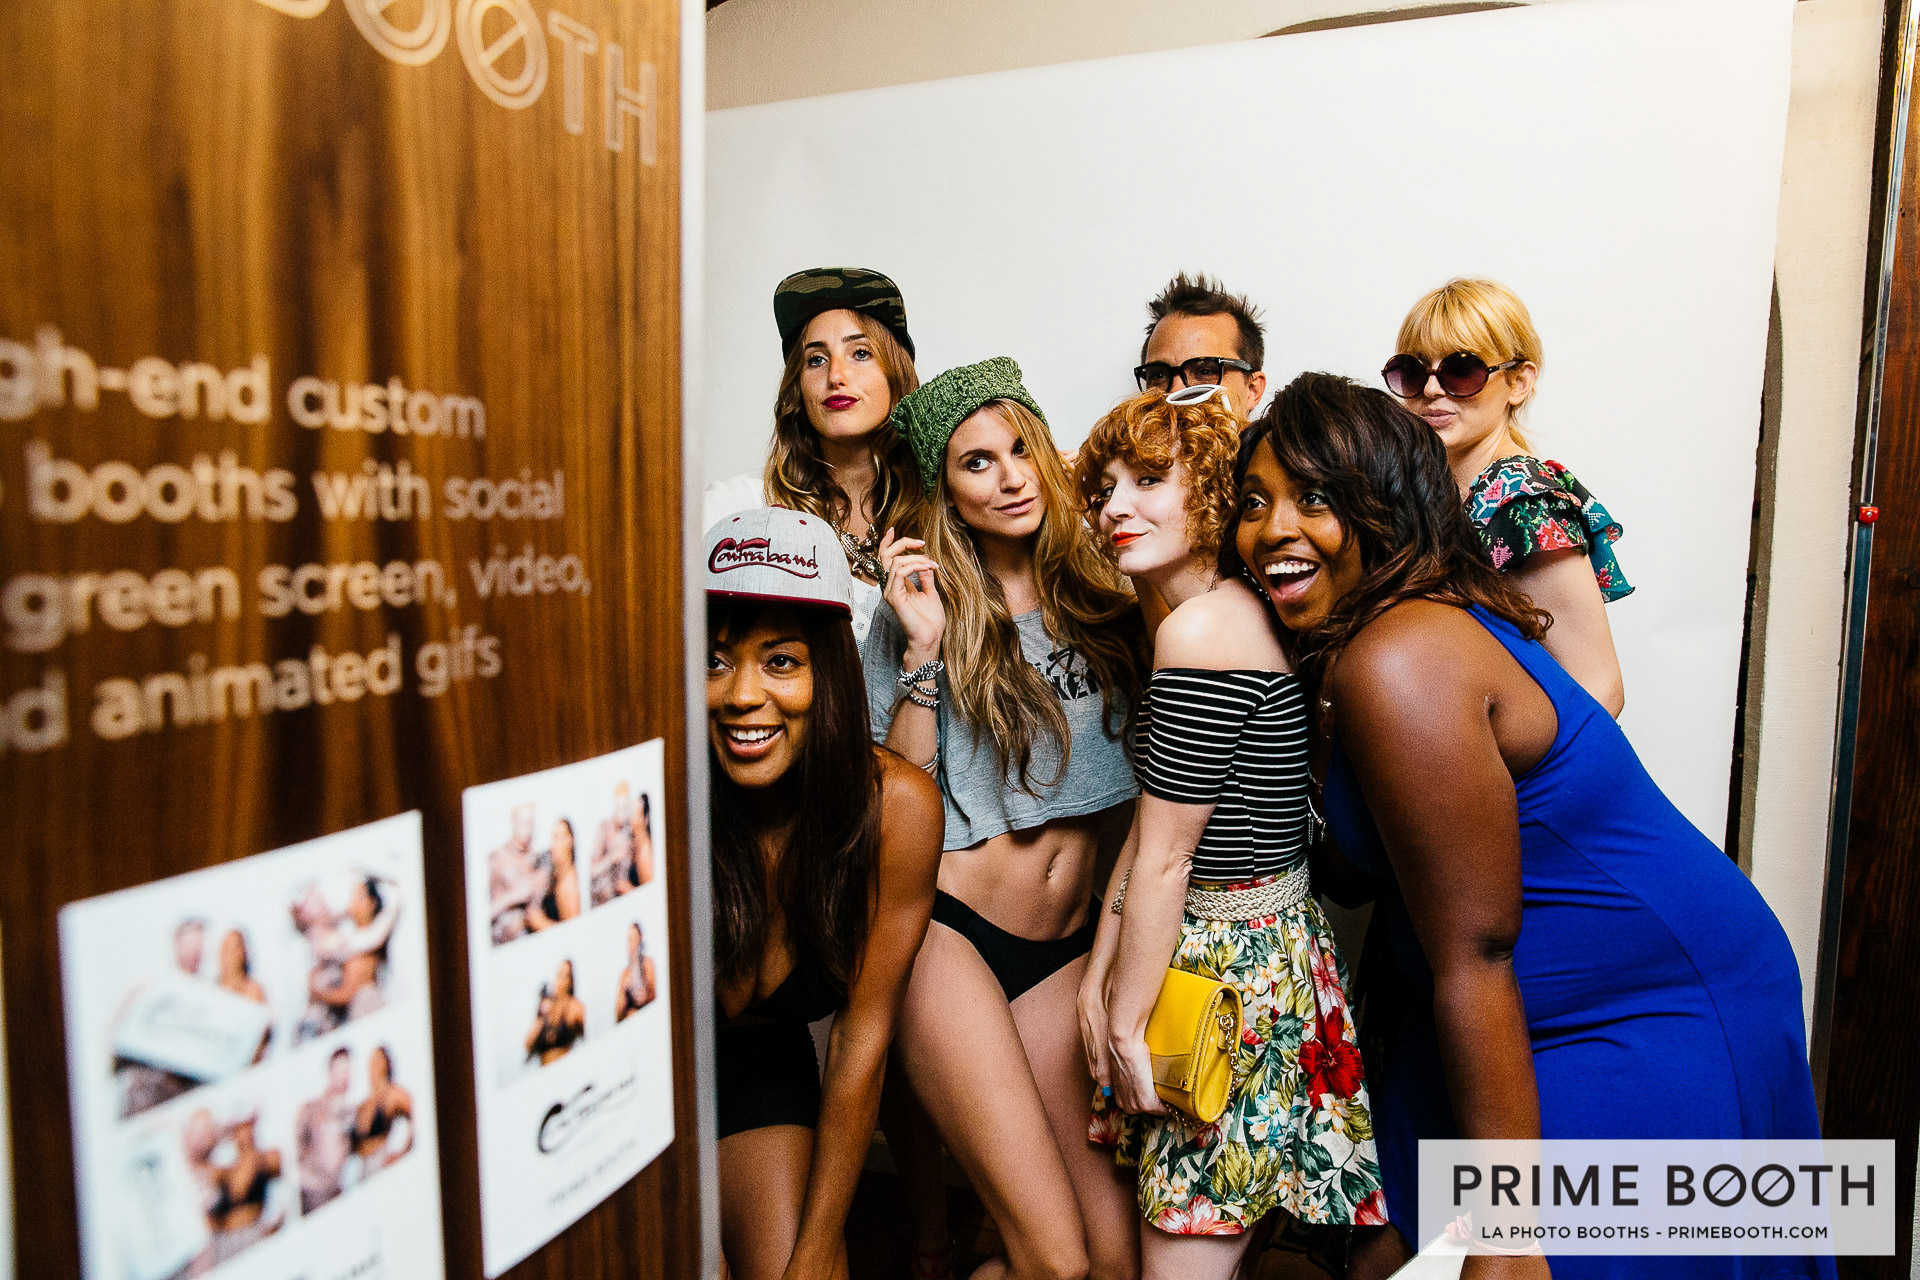 Contraband Hats Celebrity Gifting Photo Booth in Hollywood, California - Los Angeles (LA) Photo Booth Rentals